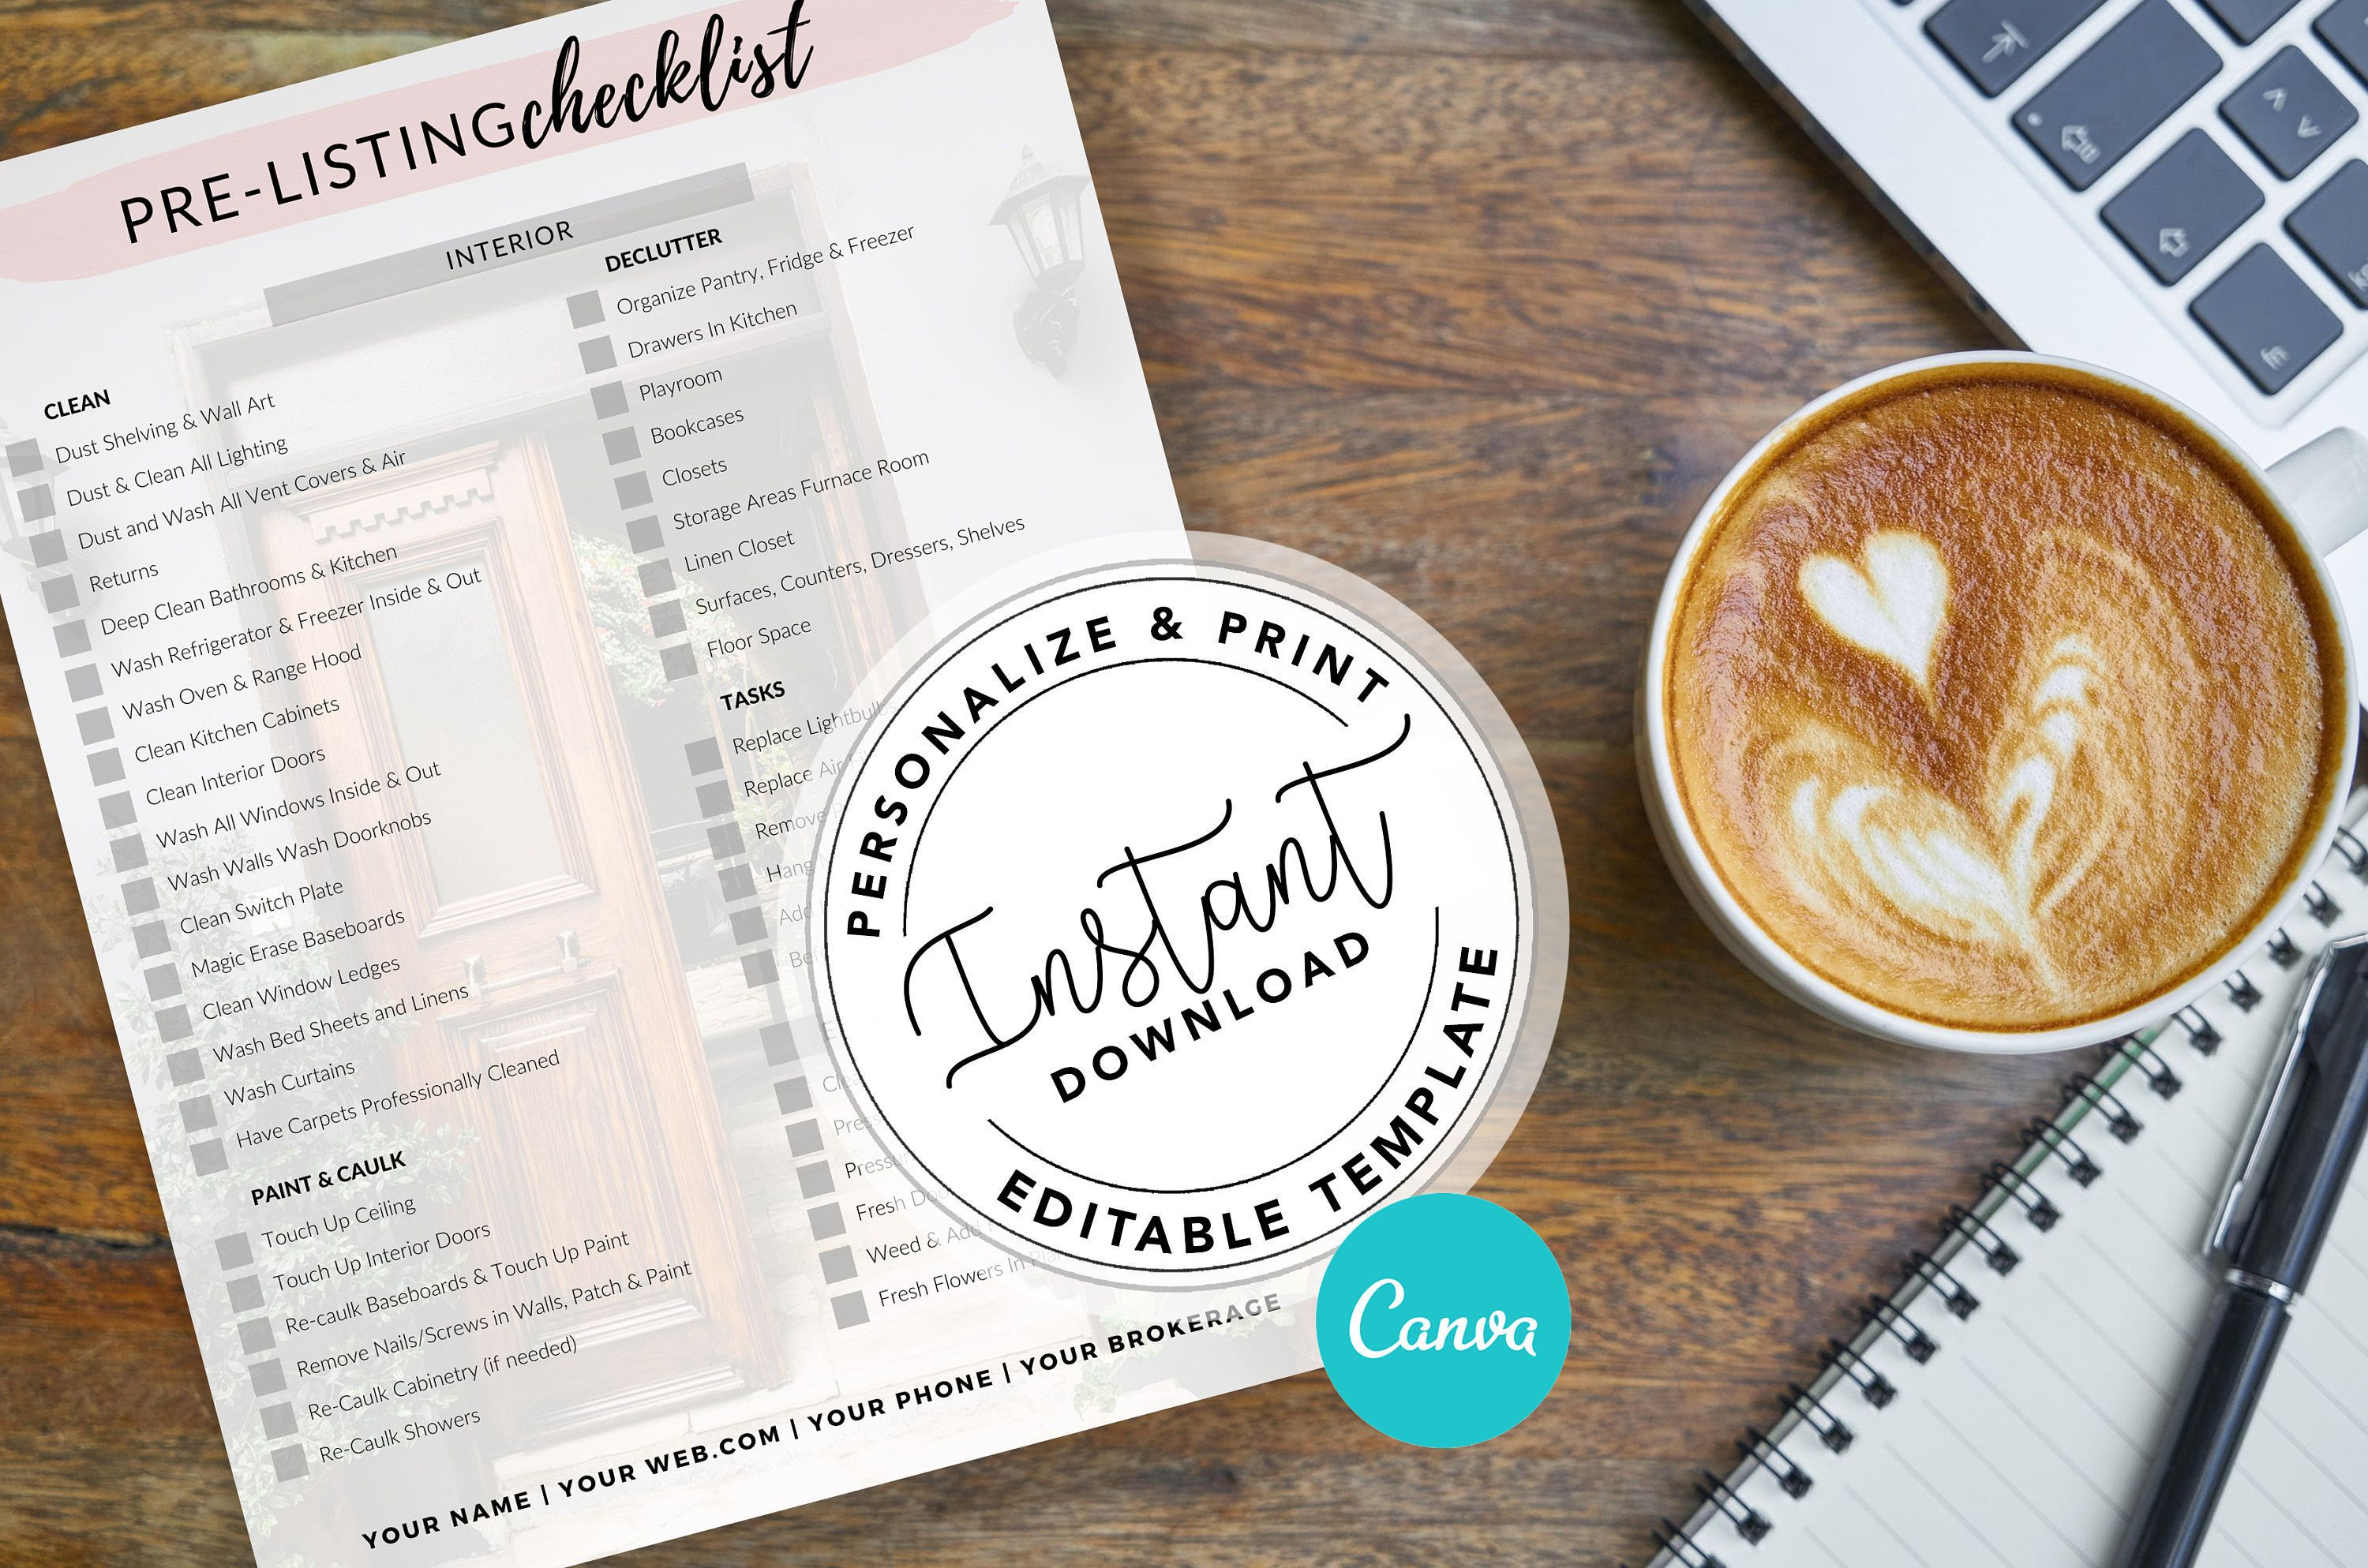 Real Estate Home Selling Checklist | Printable Pre Listing Checklist | Realtor Home Seller Checklist | Real Estate Marketing |Canva Template